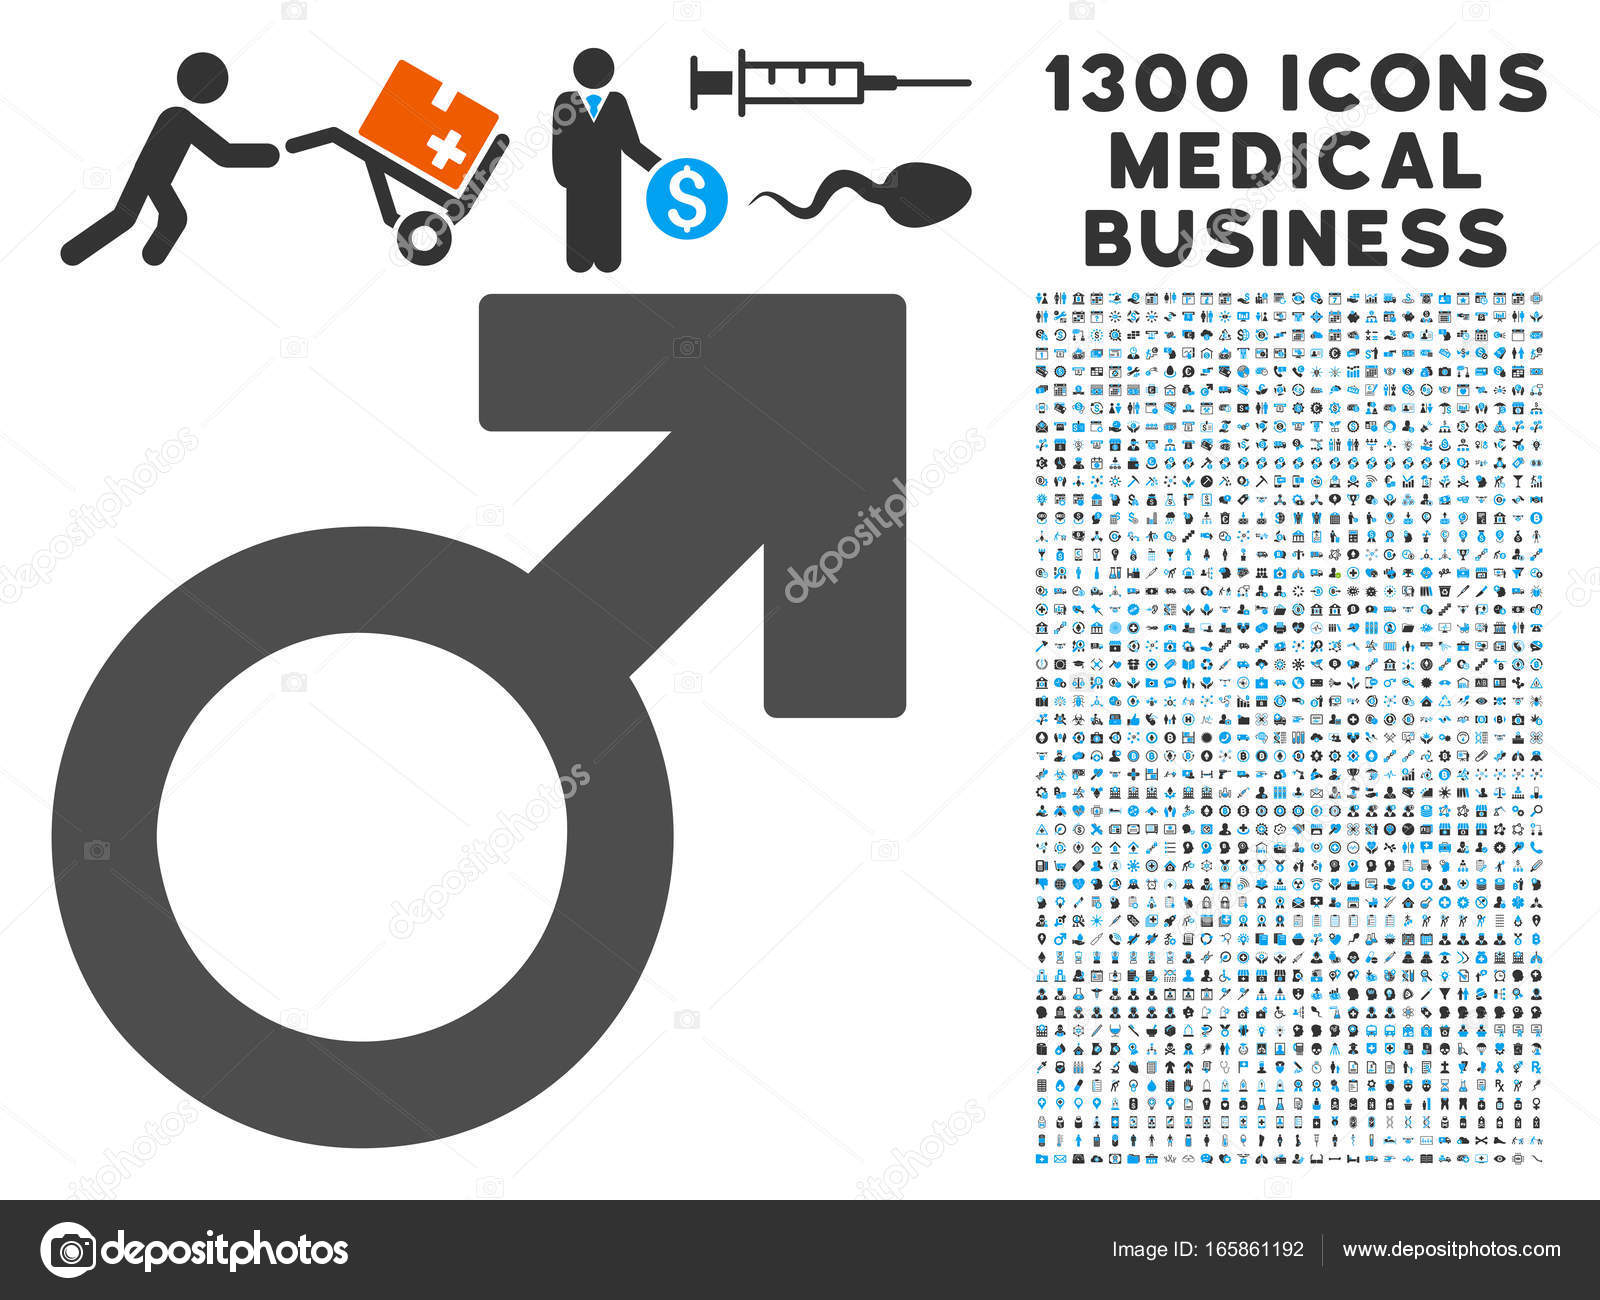 Male symbol icon with 1300 medical business icons stock vector male symbol icon with 1300 medical business icons stock vector buycottarizona Images